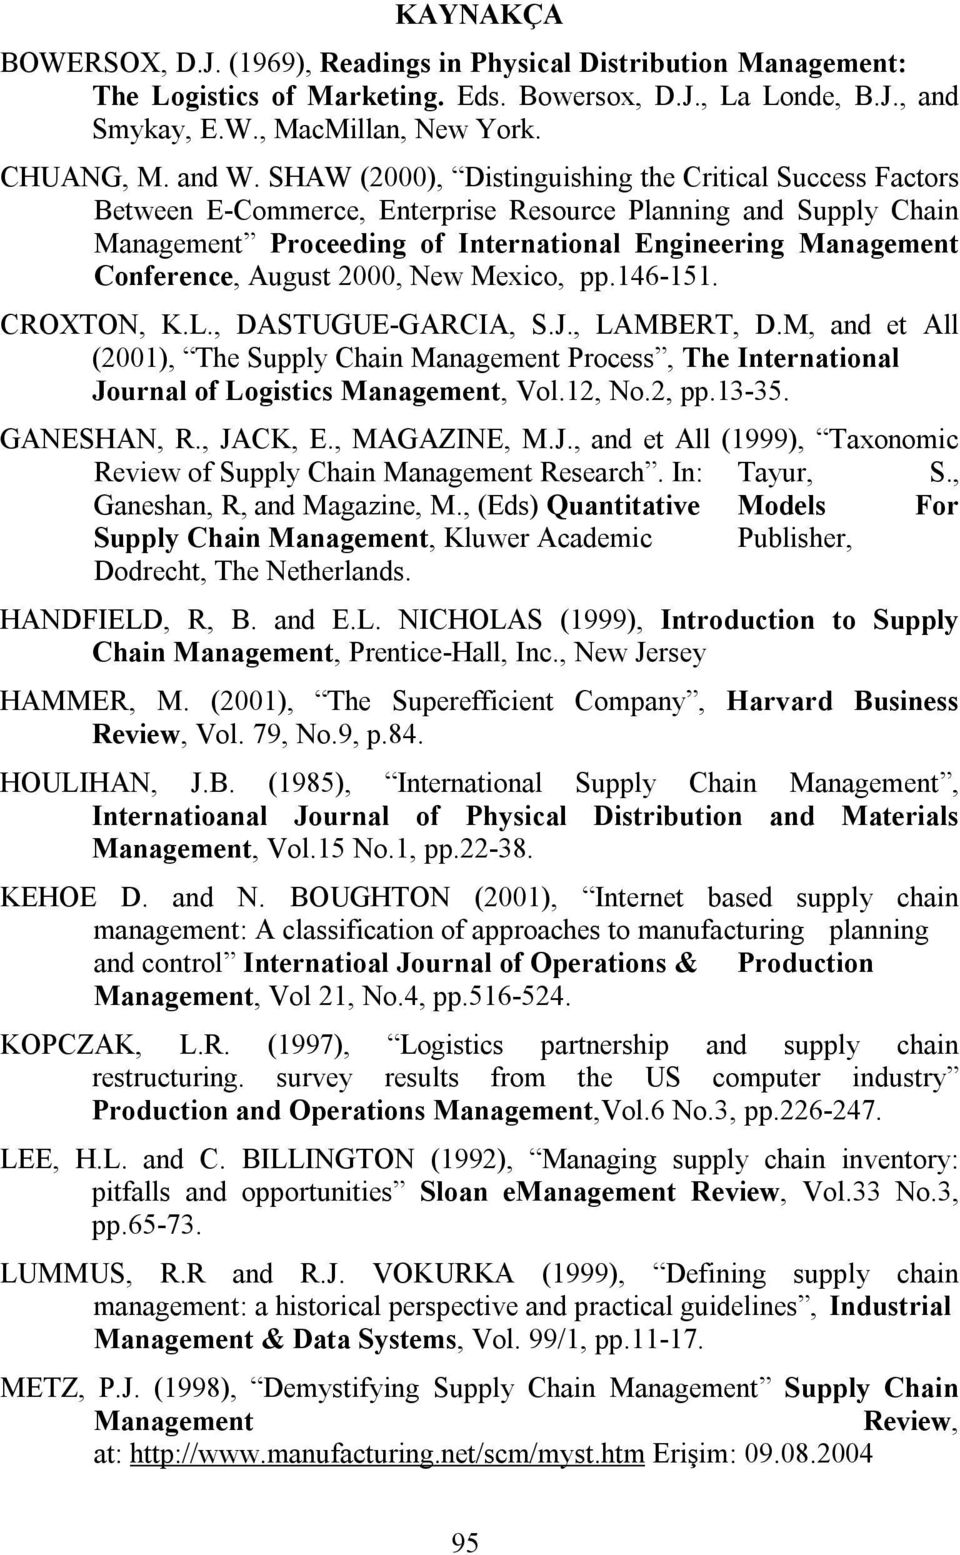 August 2000, New Mexico, pp.146-151. CROXTON, K.L., DASTUGUE-GARCIA, S.J., LAMBERT, D.M, and et All (2001), The Supply Chain Management Process, The International Journal of Logistics Management, Vol.